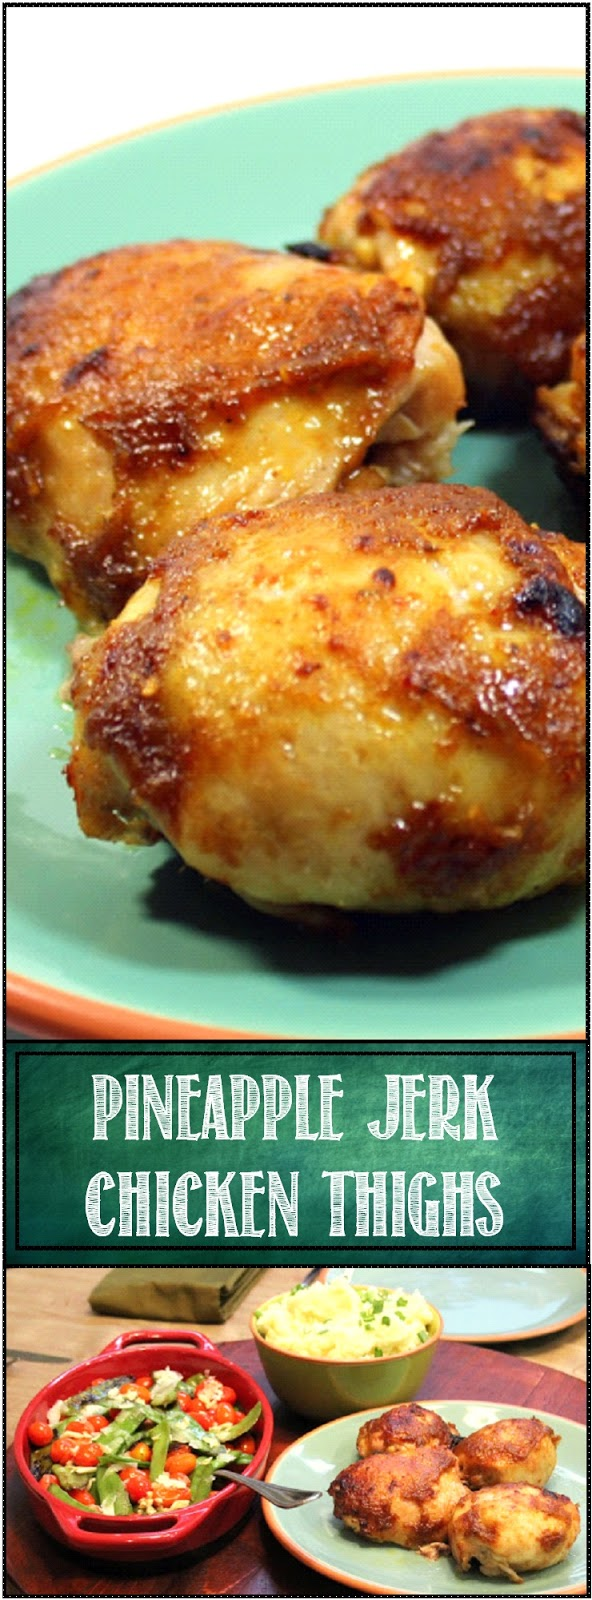 52 Ways to Cook: Grilling Time - Grilled Pineapple Jerk Chicken Thighs